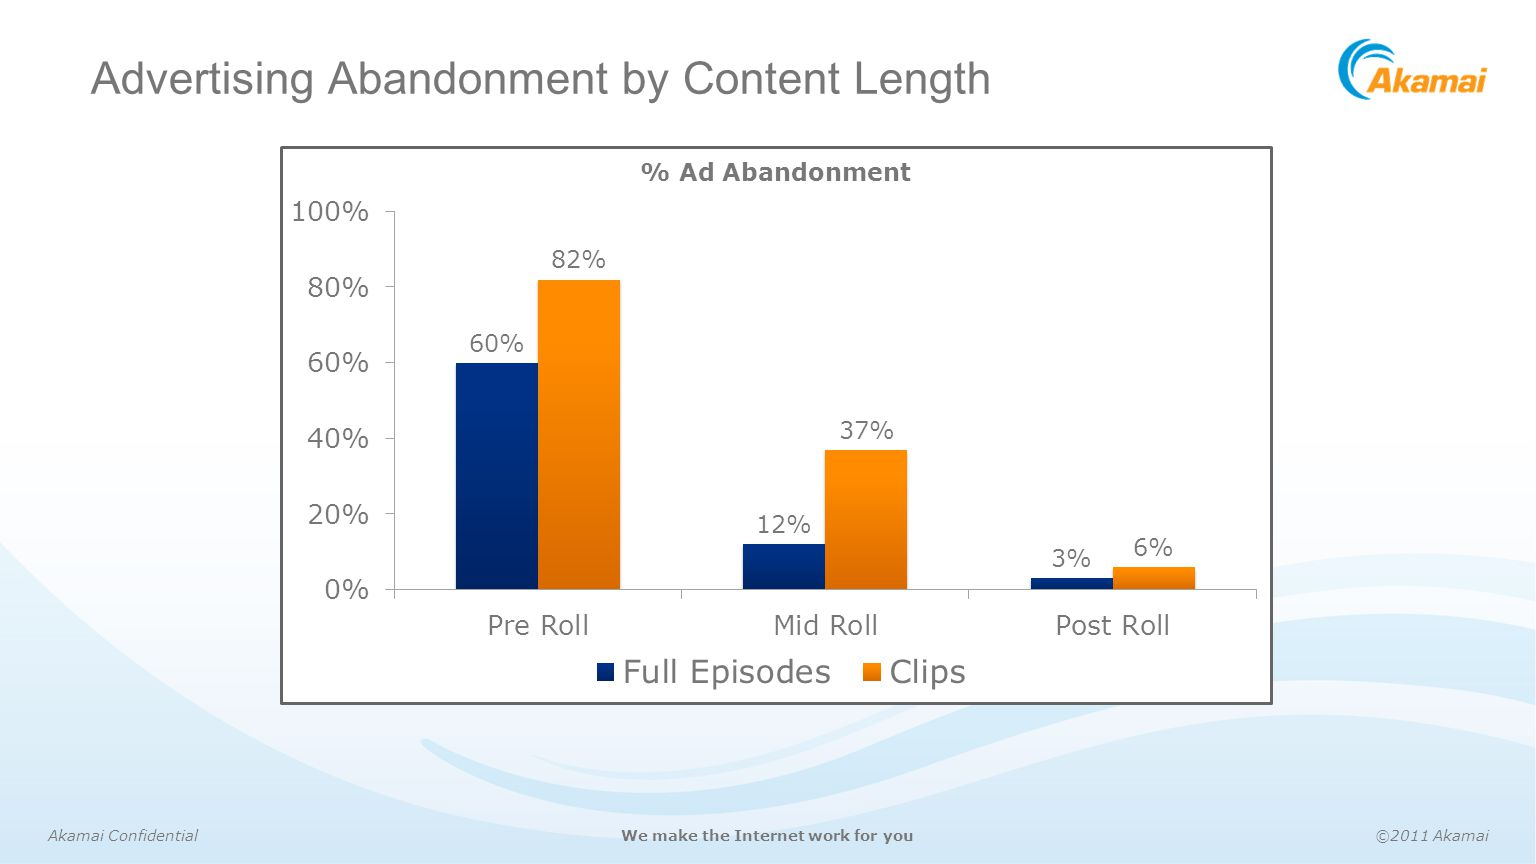 Advertising Abandonment by Content Length